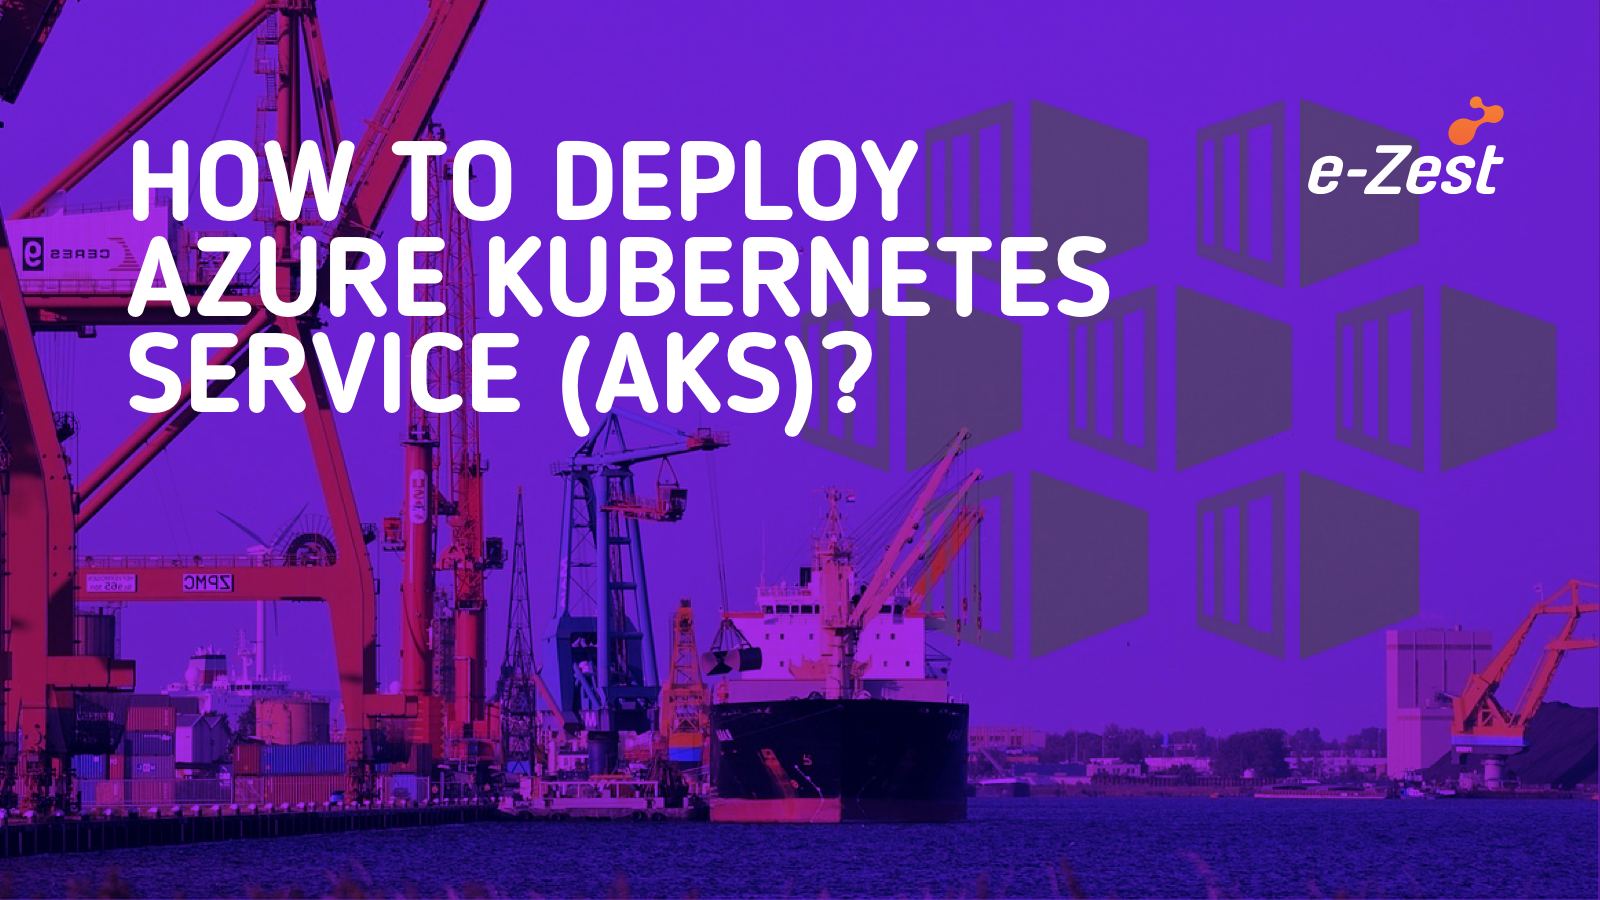 How to deploy Azure Kubernetes Service (AKS)?